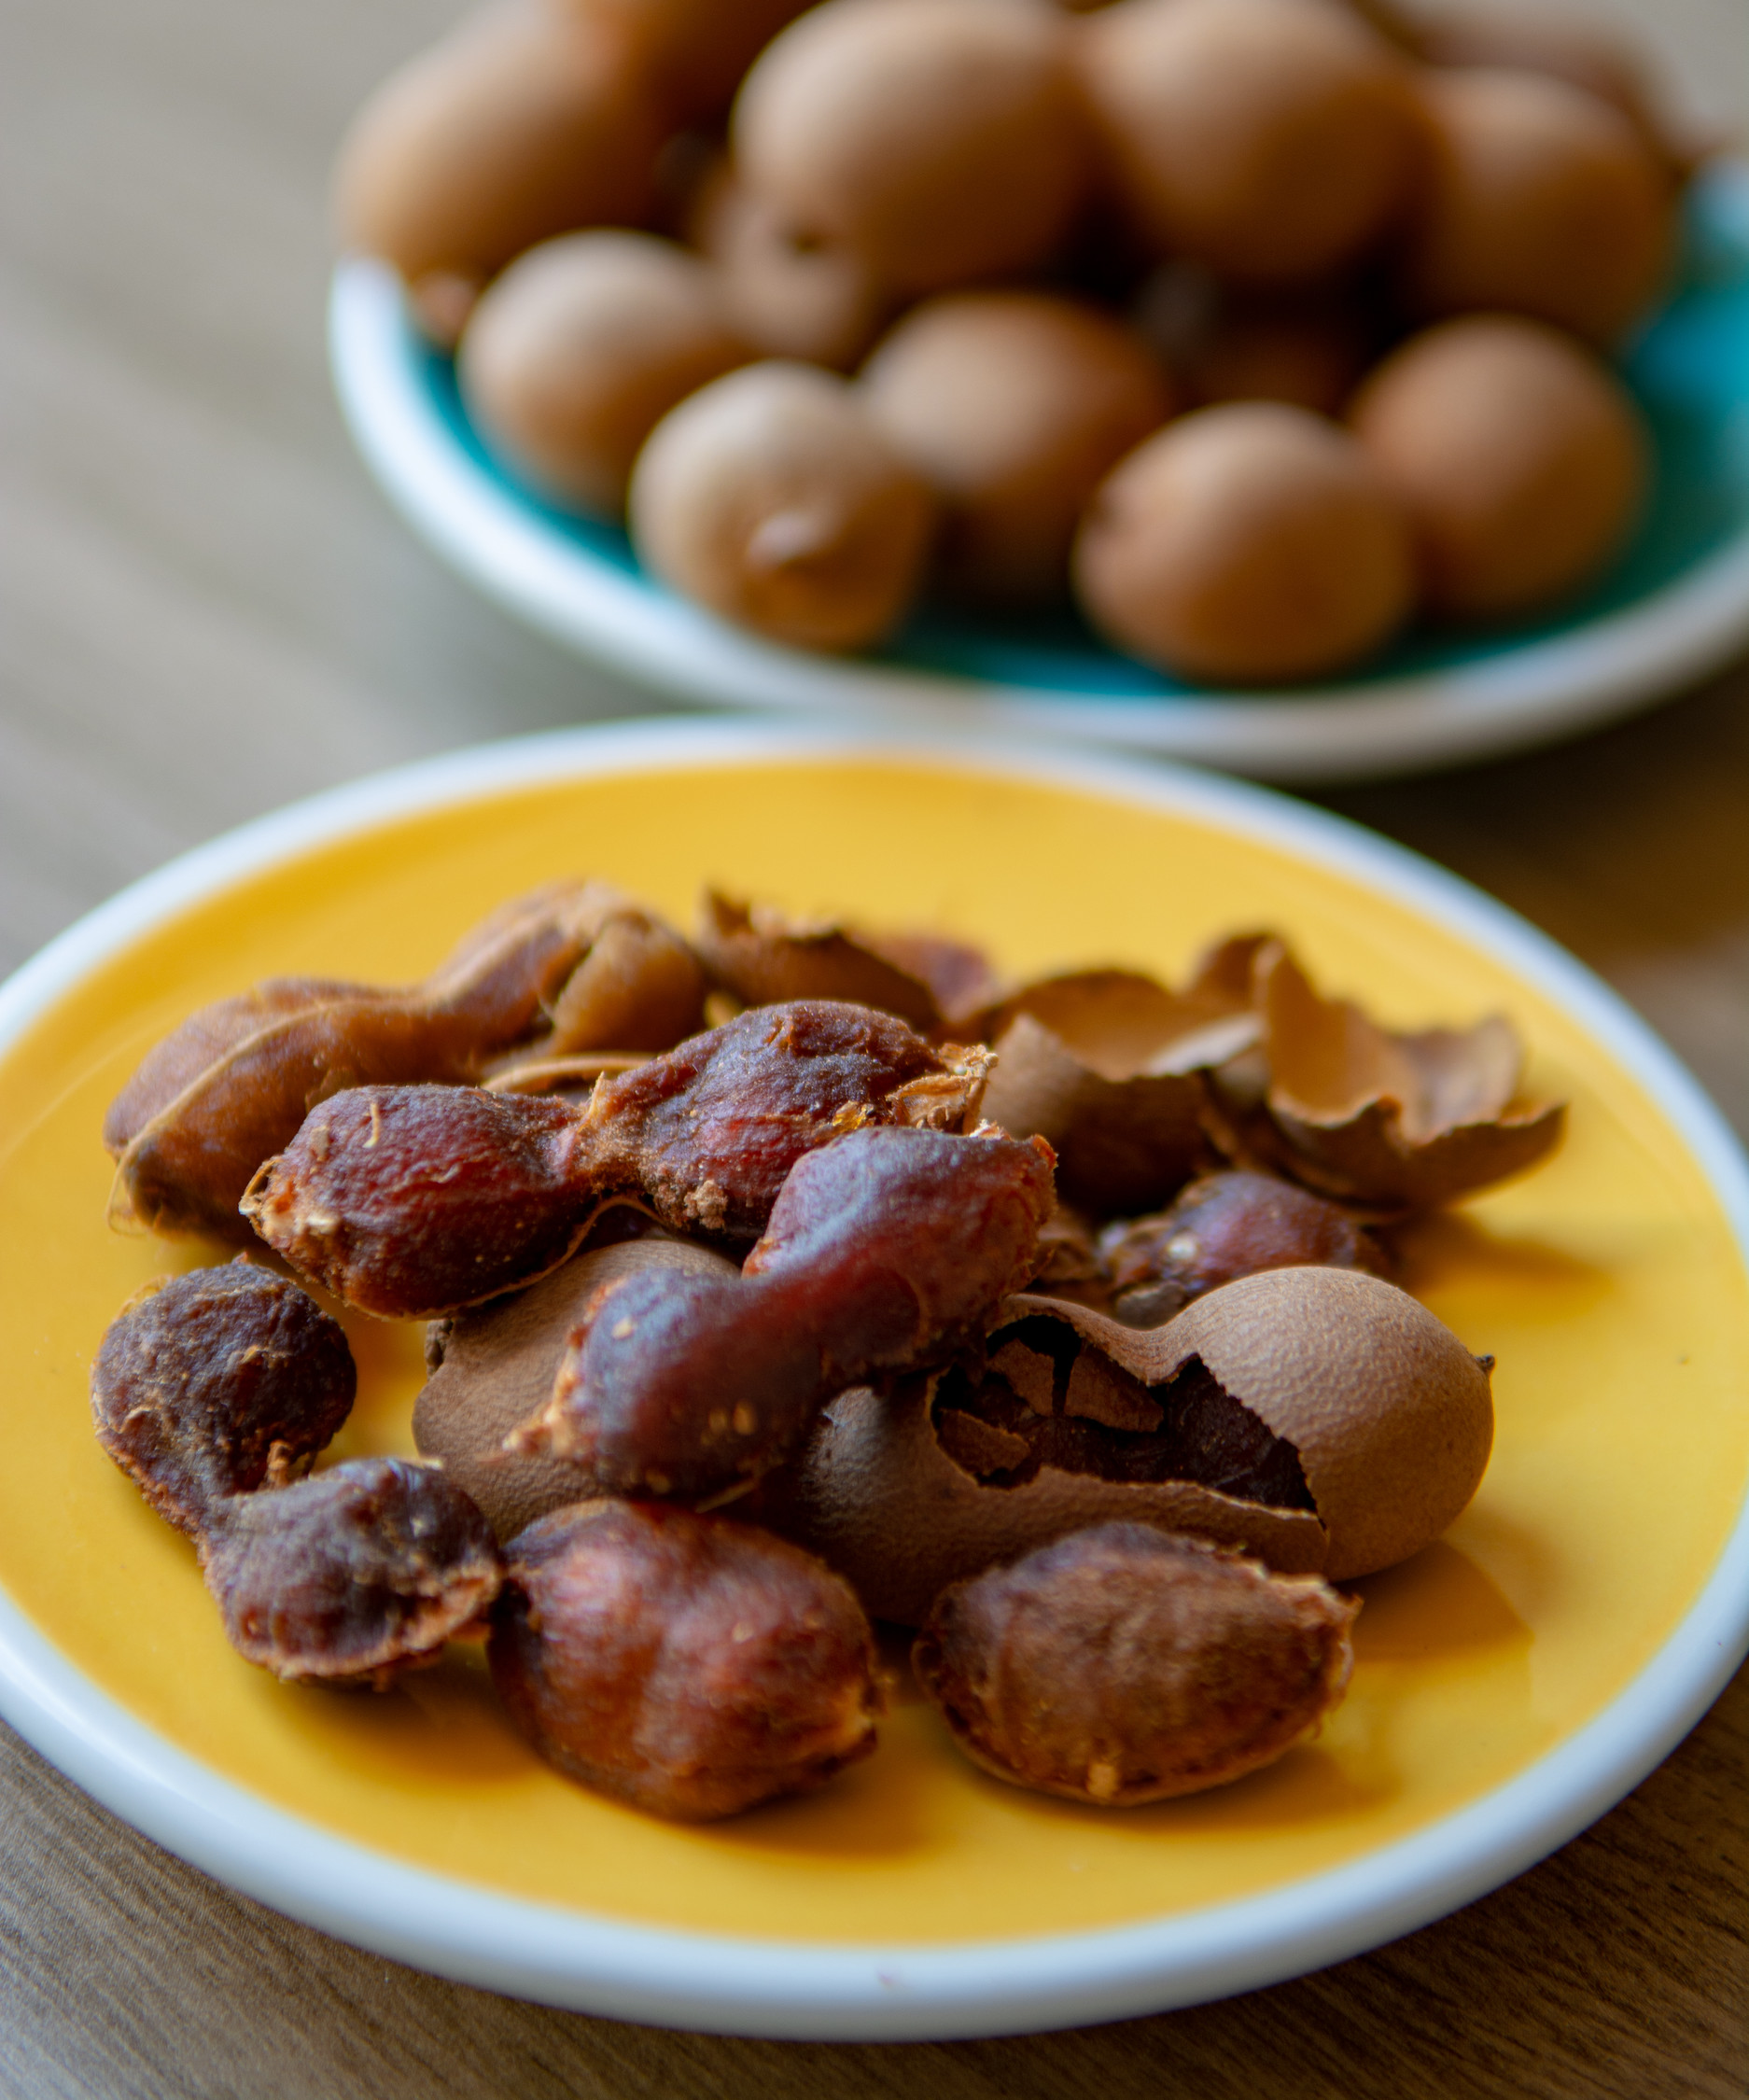 Plate of tamarind Cuban fruit on a yellow plate.